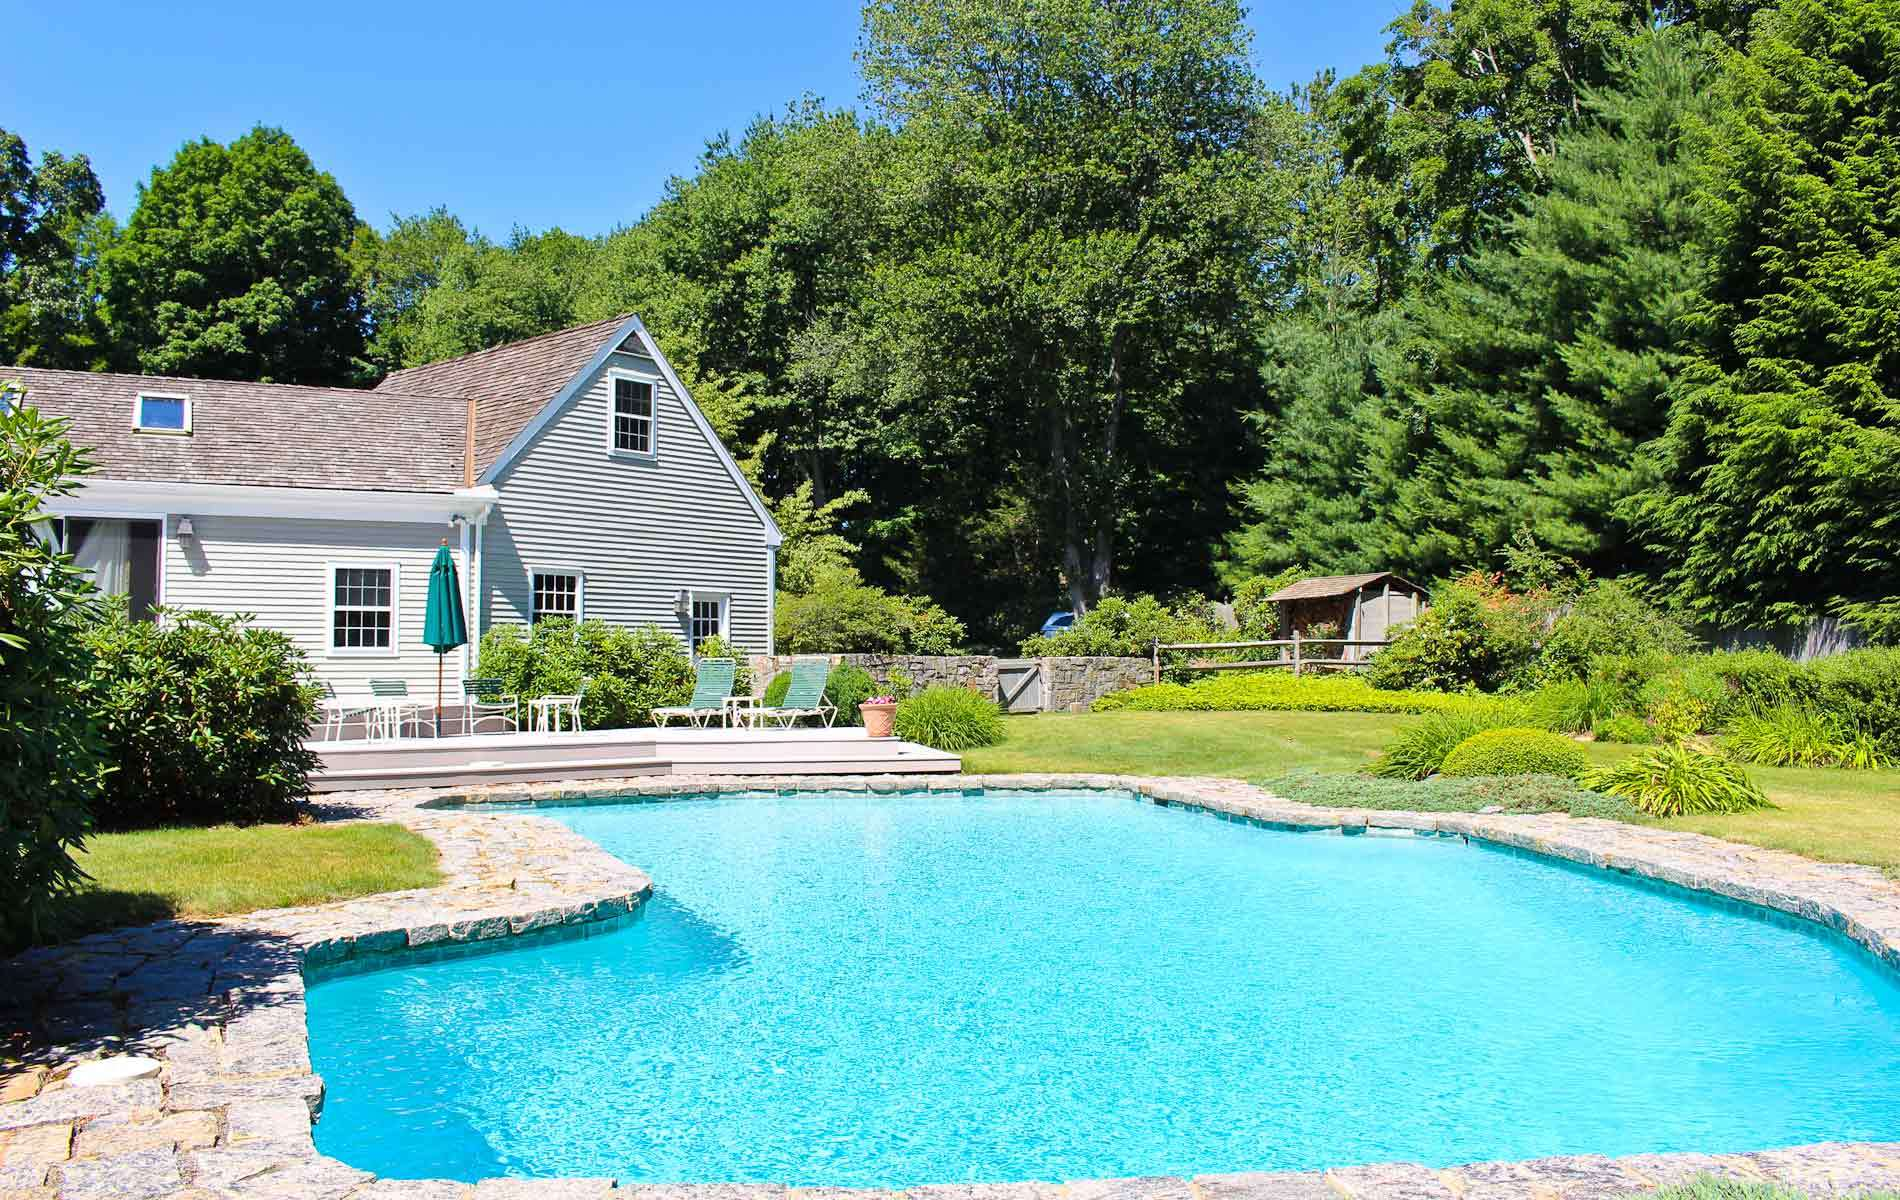 Homes with swimming pool for sale in redding ct find and Houses for sale in london with swimming pool